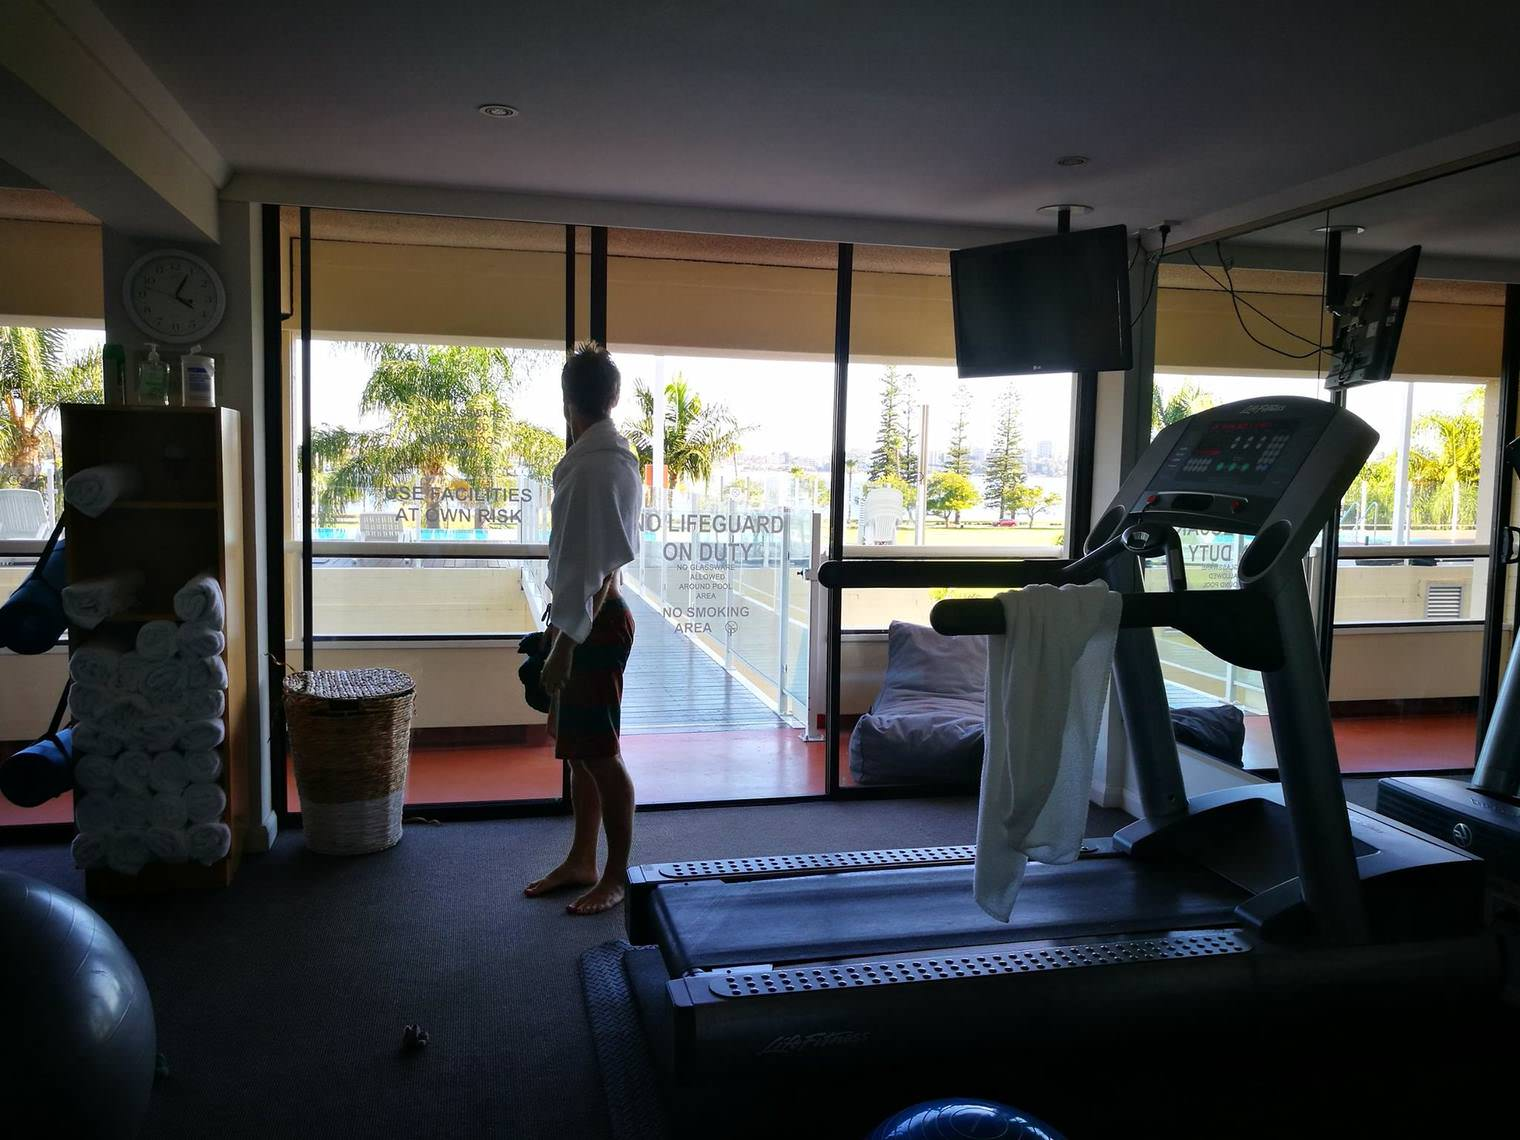 Crowne Plaza Perth A Wonderful Hotel Experience Enhanced by an Expected Reunion Gym